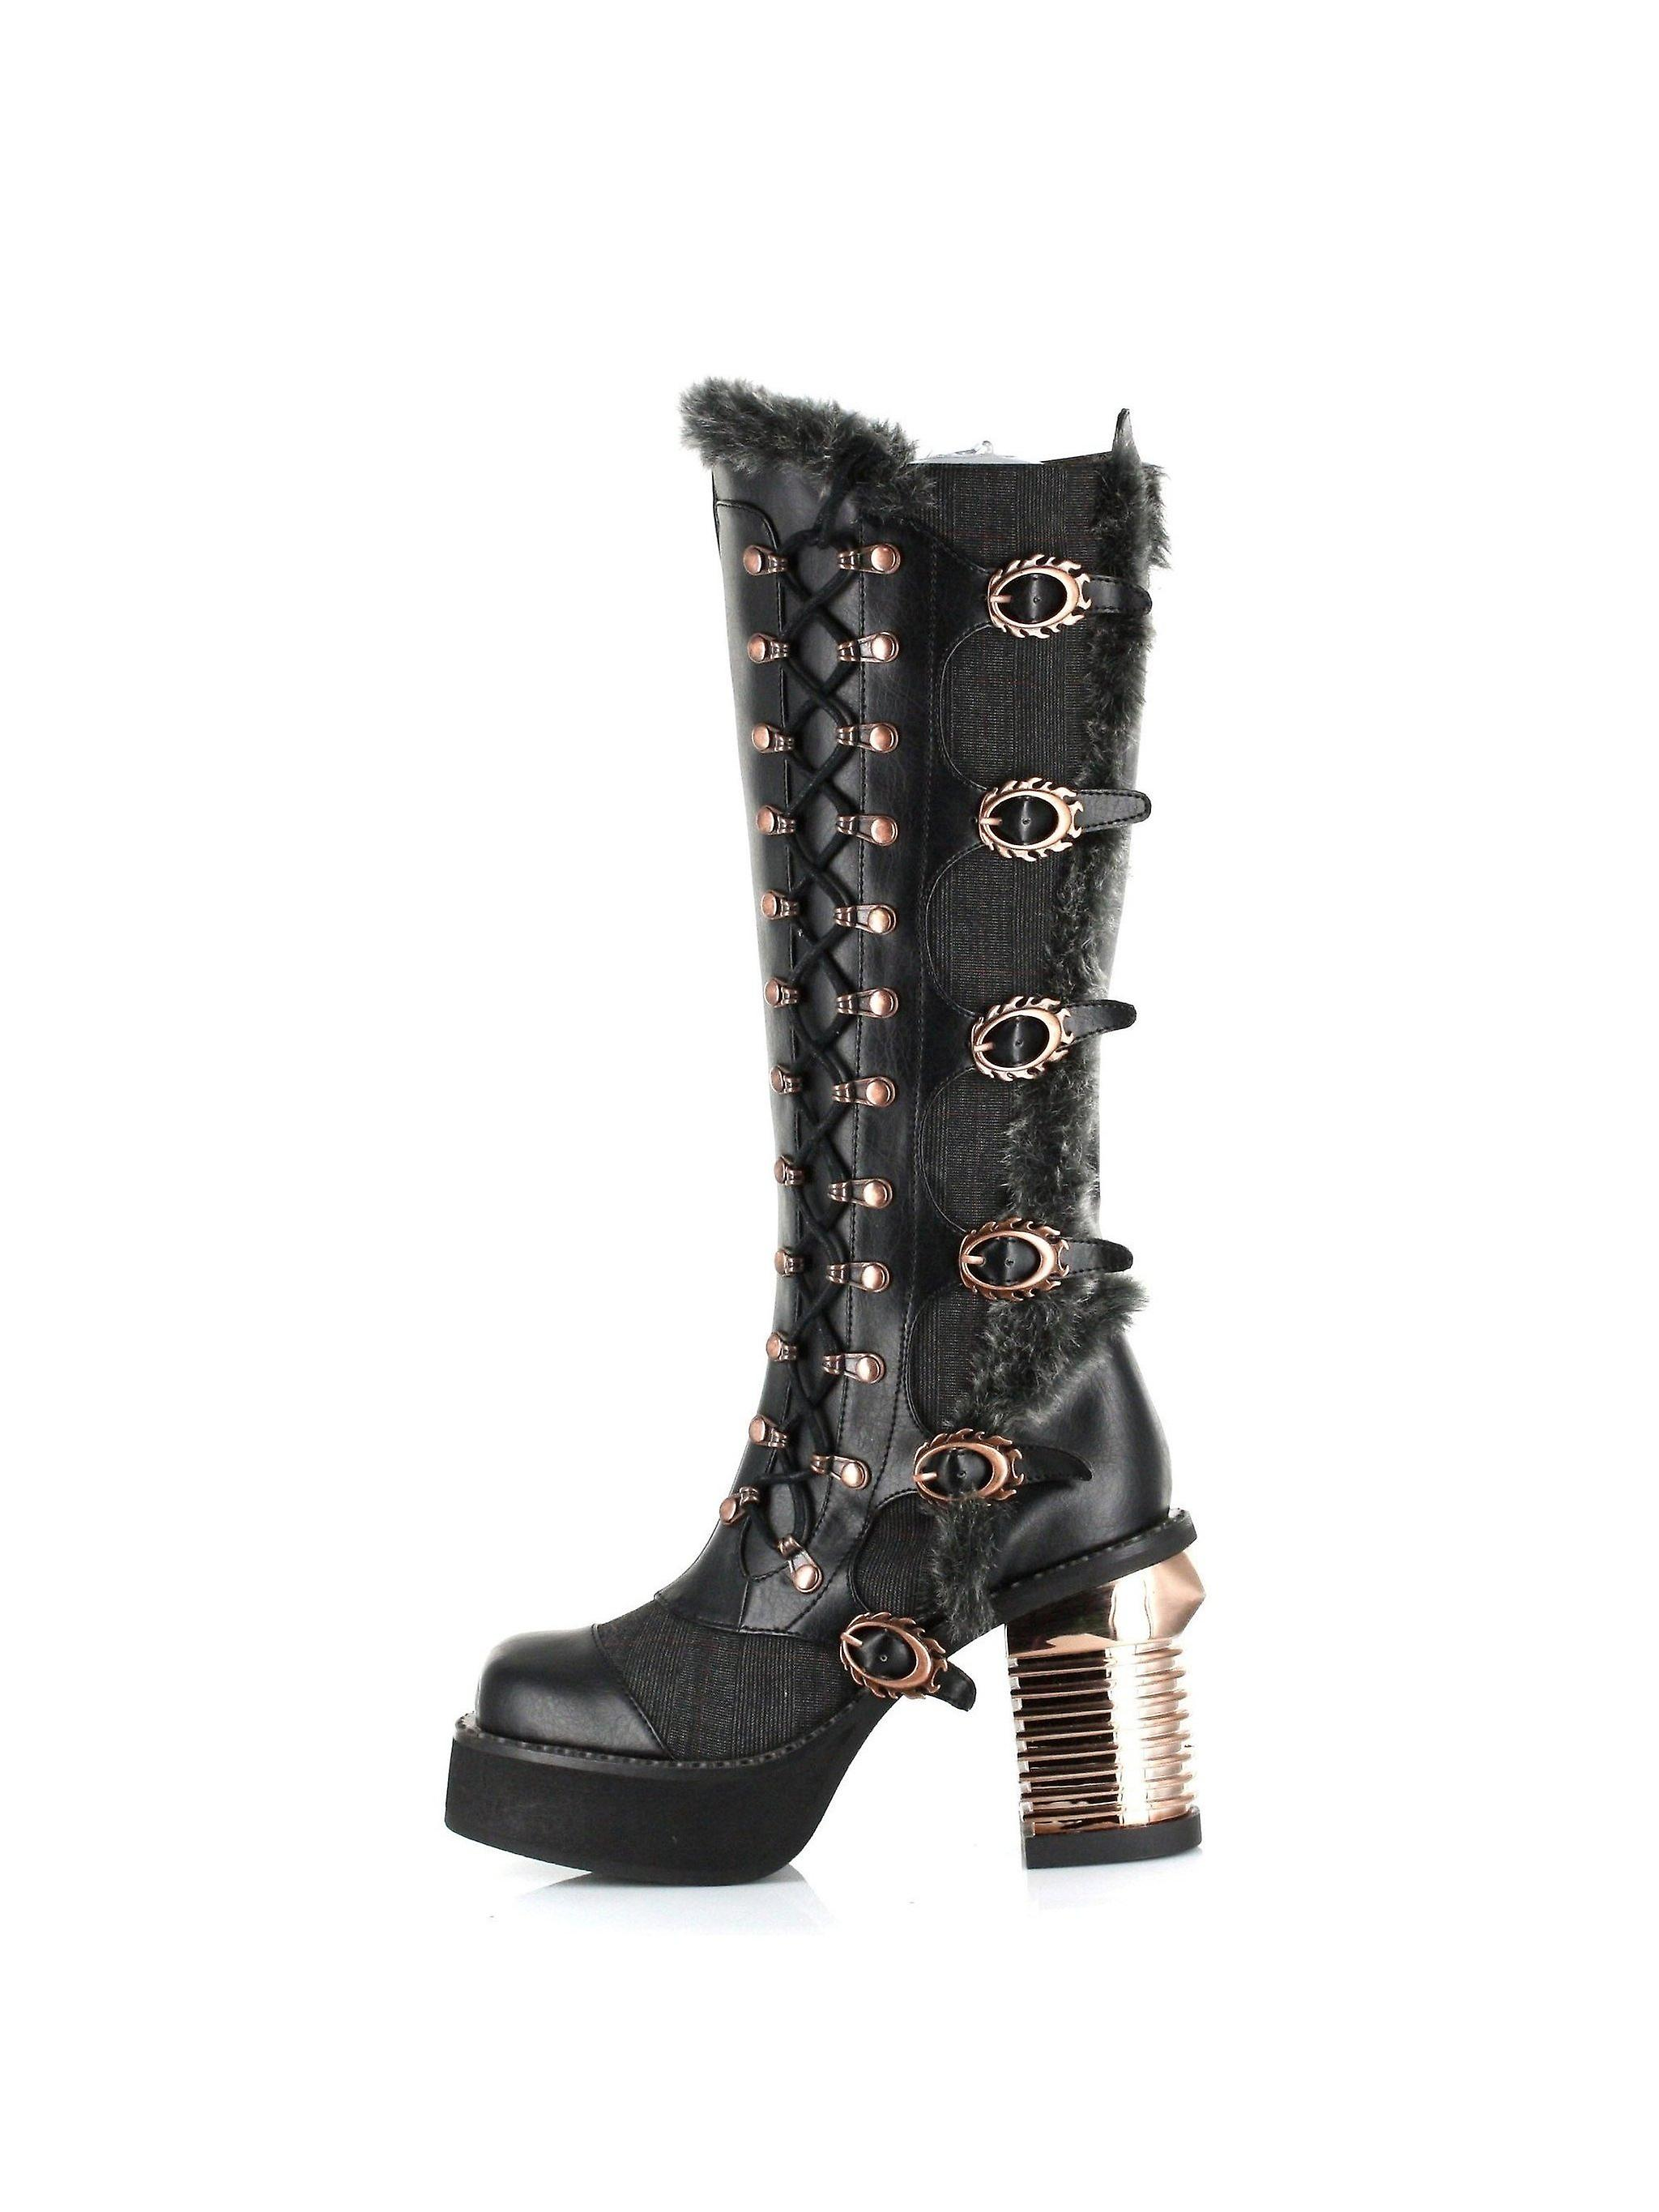 Hades Shoes H-Langdon Knee high platform boots with oxford tuxedo fabric